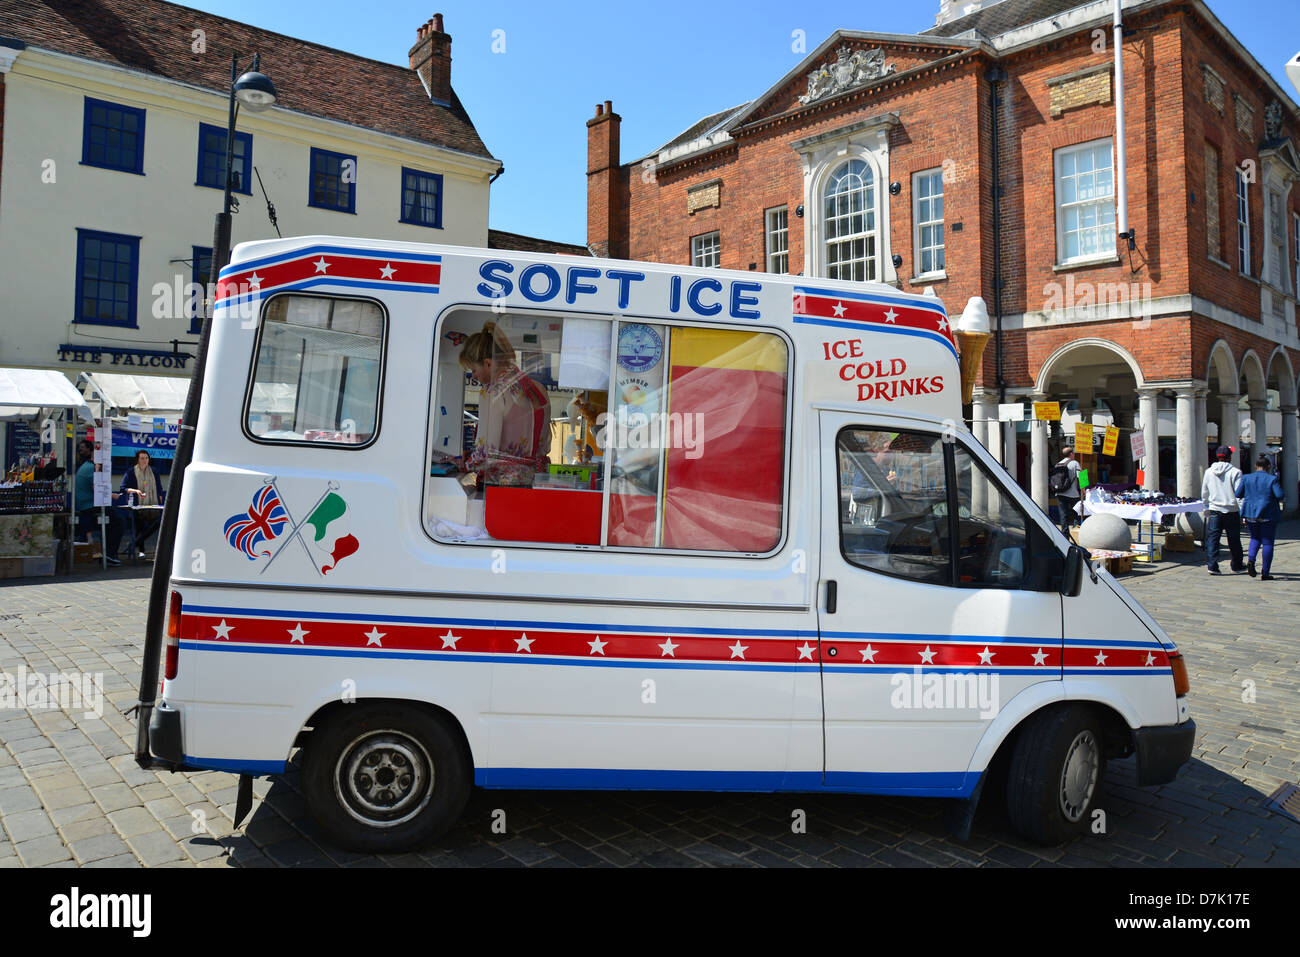 c33fa53b16b6  Soft Ice  ice cream van at High Wycombe Market